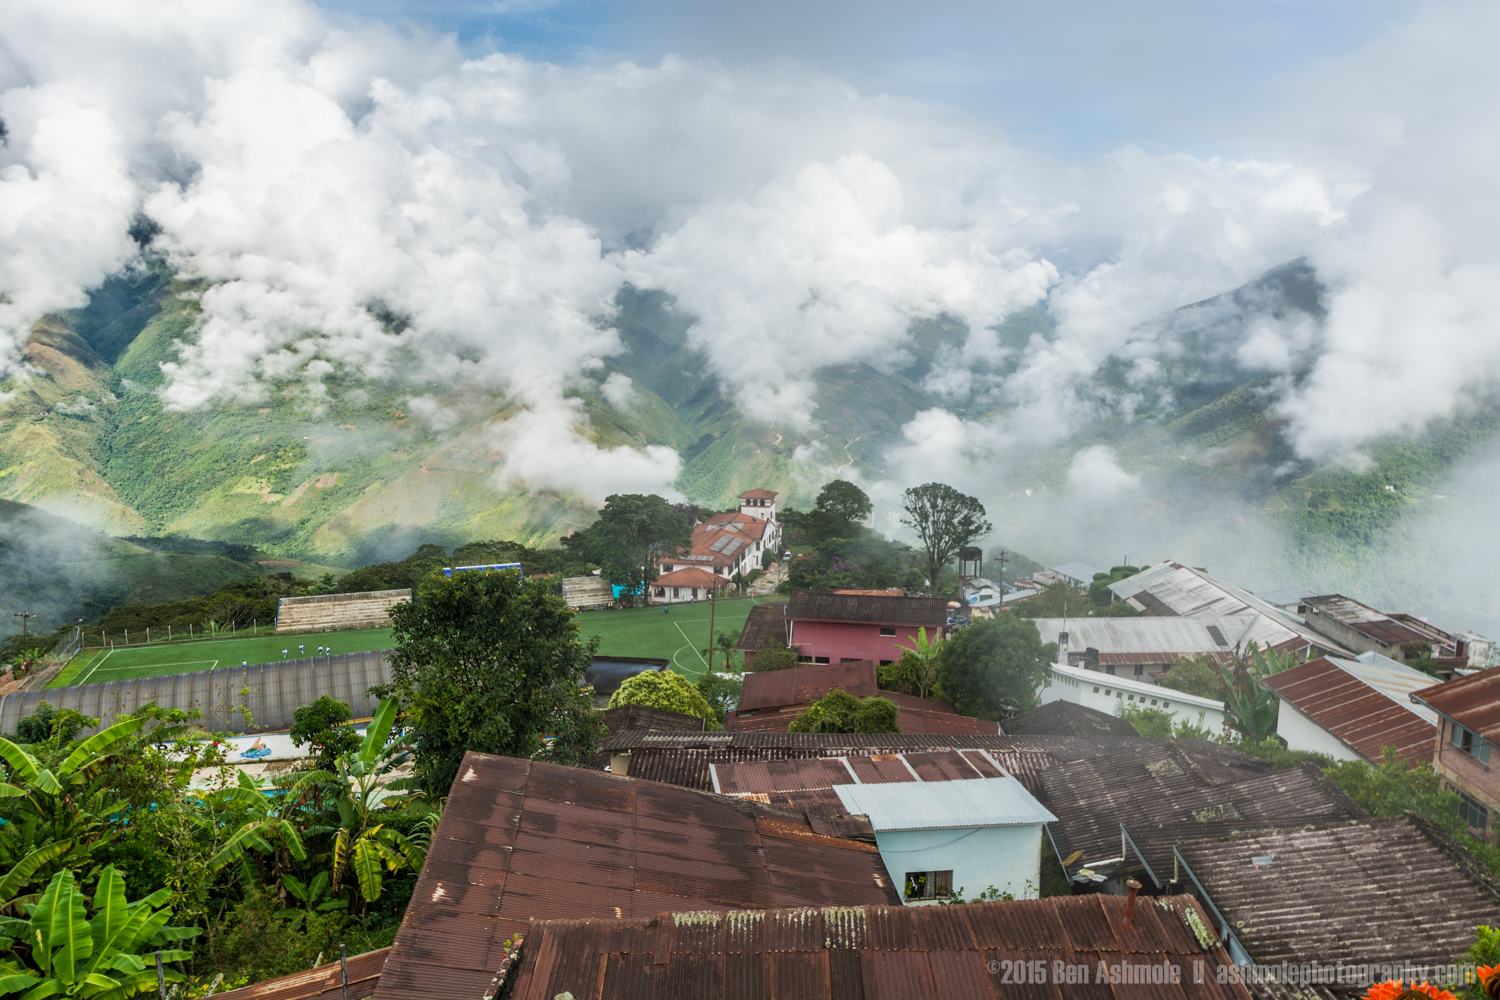 City In The Clouds, Coroico, Bolivia